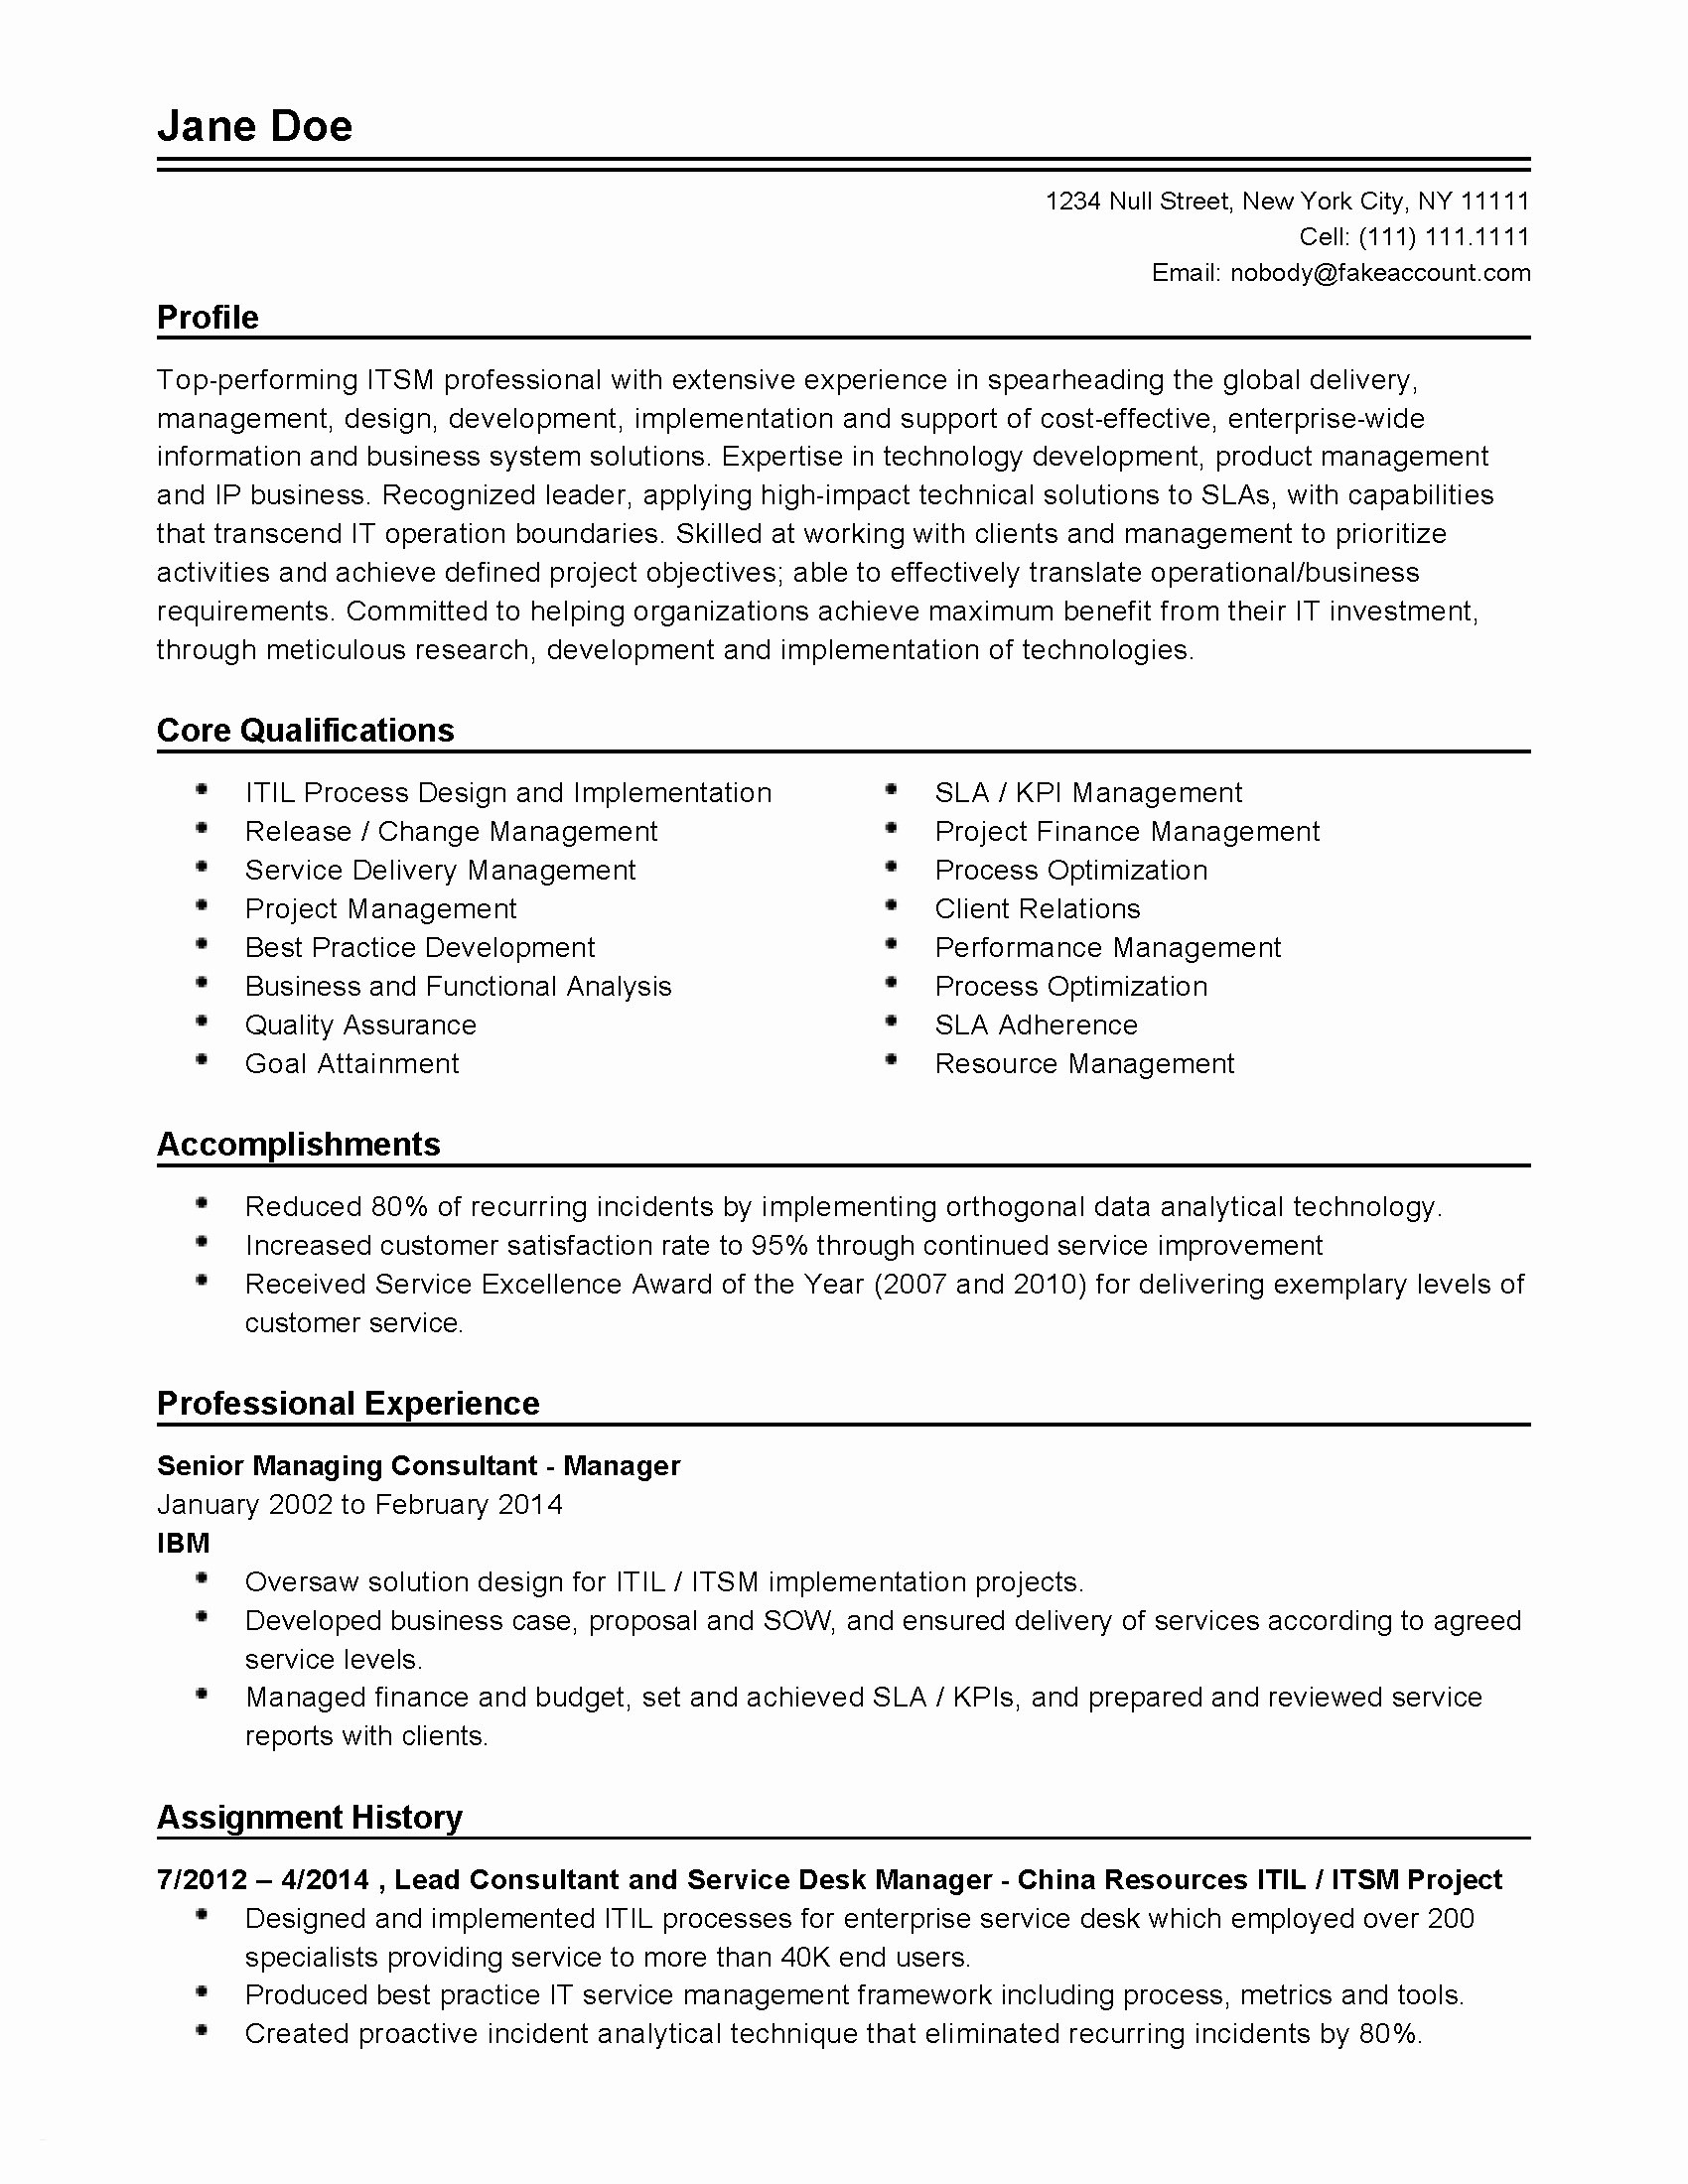 Offer Letter Email Template - Contemporary Resume Templates Free Awesome Good Resume Template Free